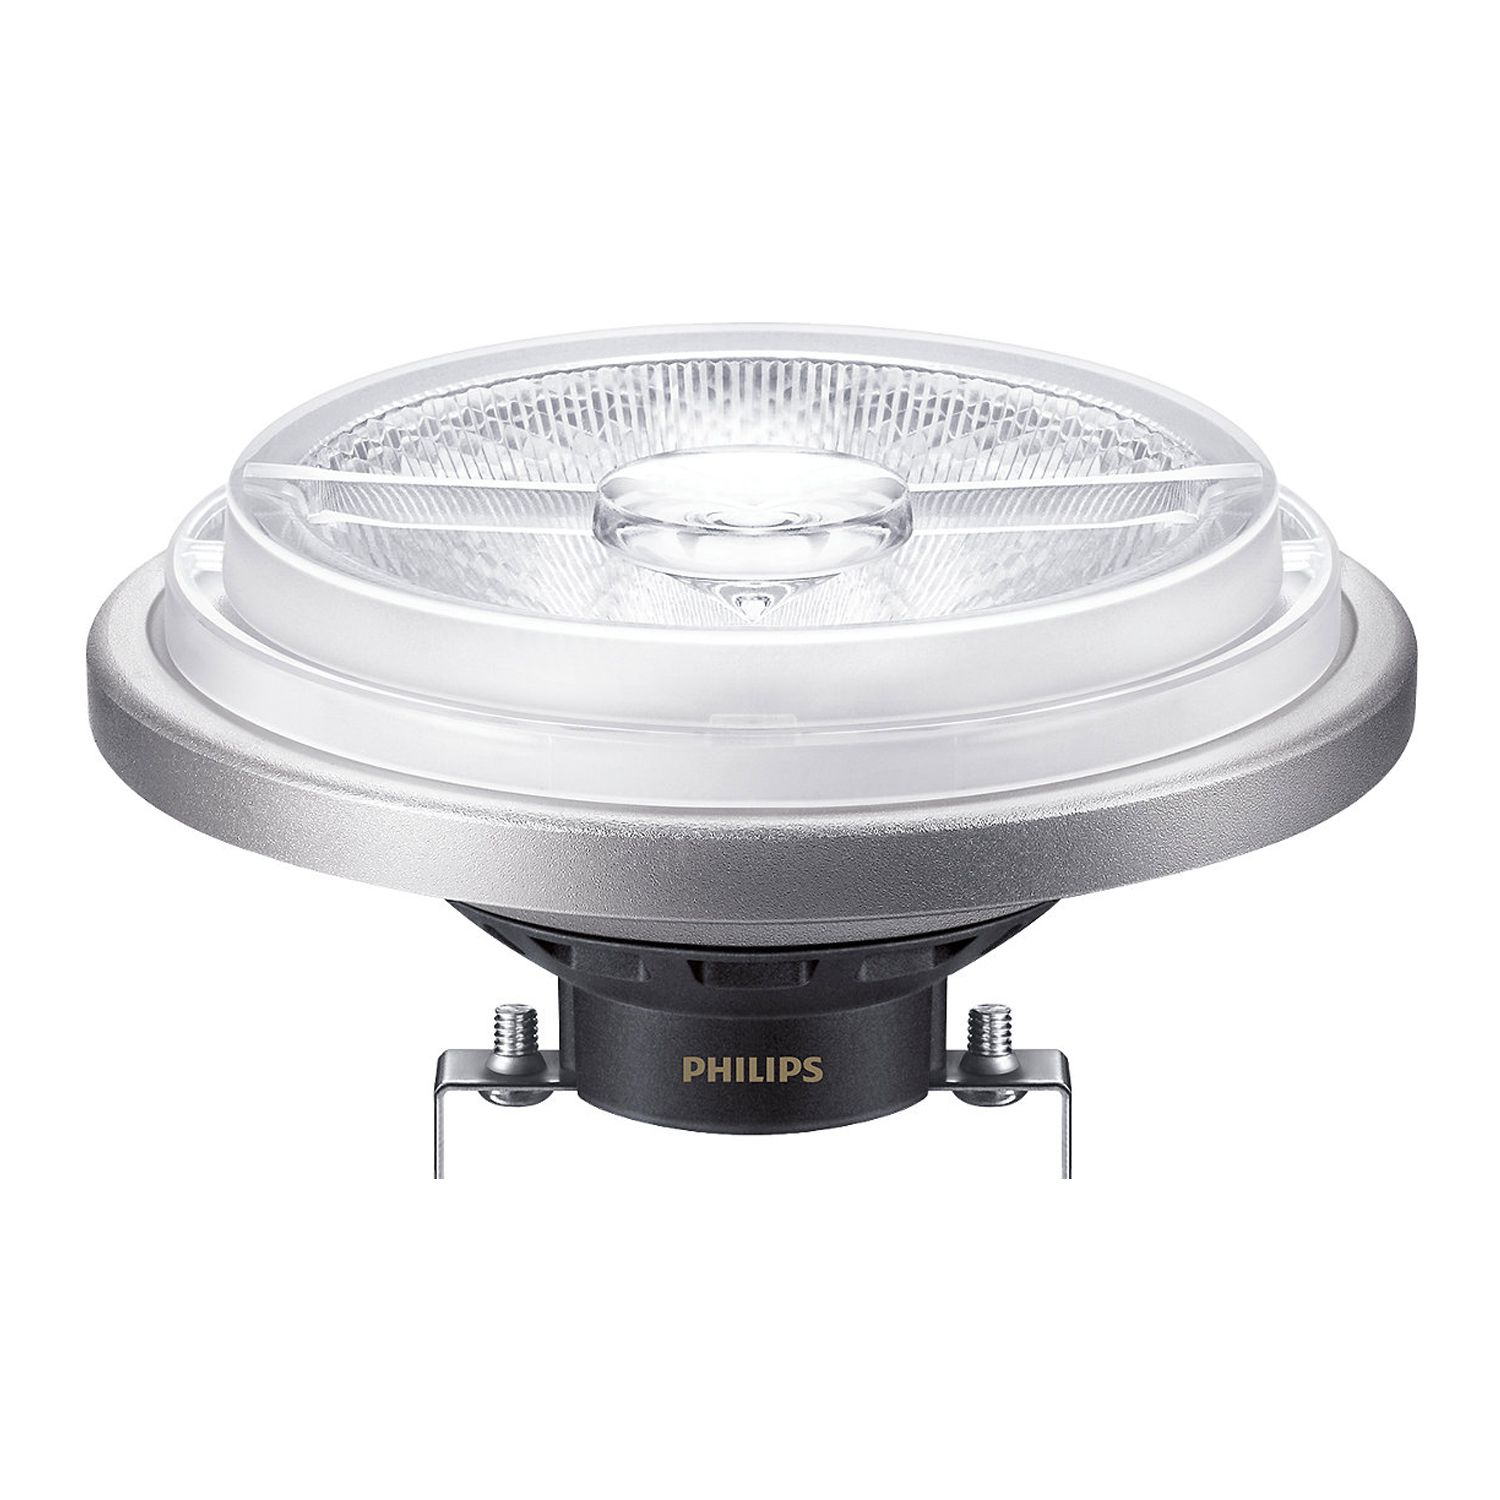 Philips LEDspot ExpertColor G53 AR111 (MASTER) 15W 927 24D | Dimmable - Highest Colour Rendering - Replacer for 75W